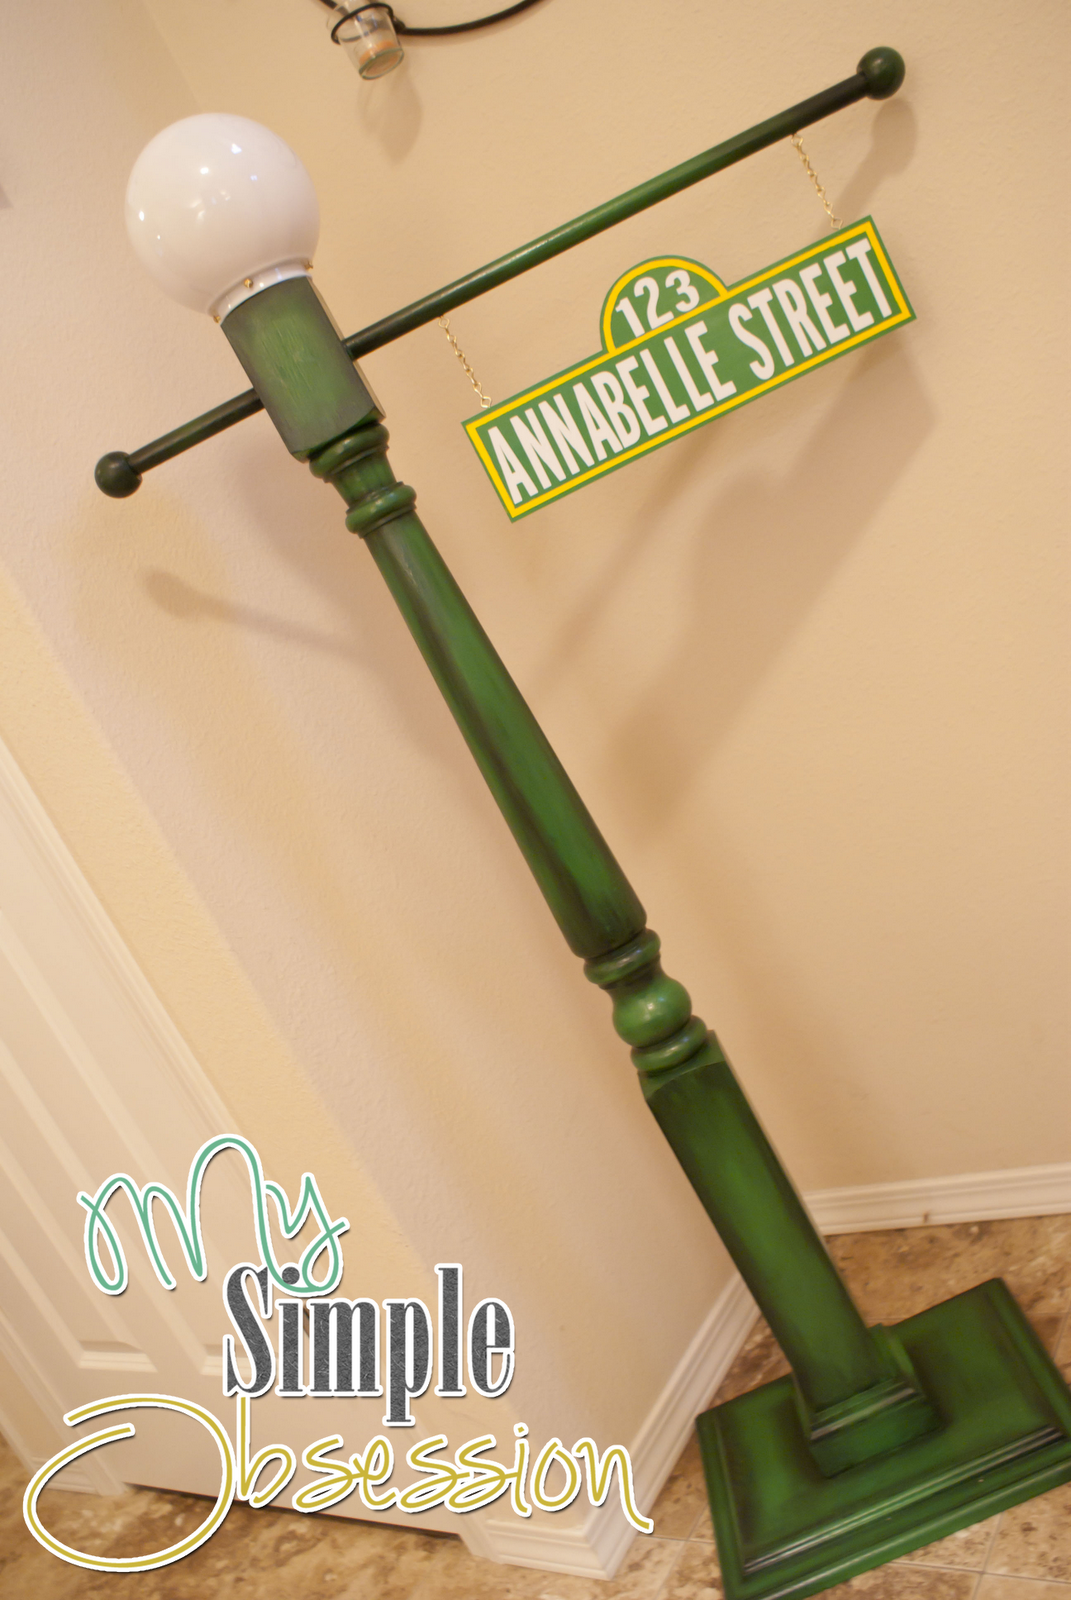 My simple obsession sesame street post sign tutorial almost everything we bought for this project can be found at home depot the only things that i got else where were the wood knobs and the 2 plaques which i aloadofball Choice Image